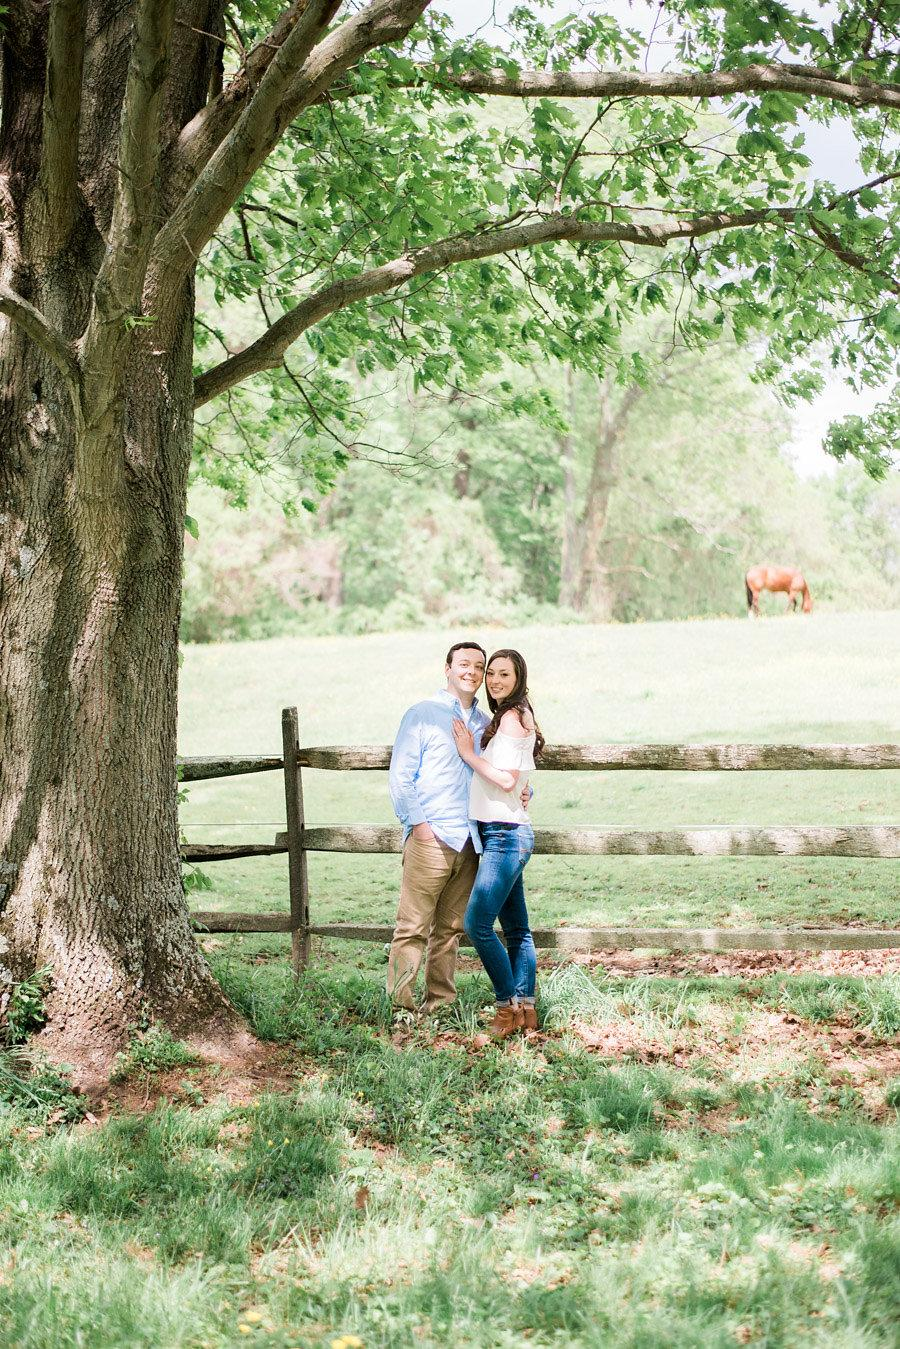 emcee_studio_photographie_engagement_photography_bride_groom_emily_jack_march_2016-37